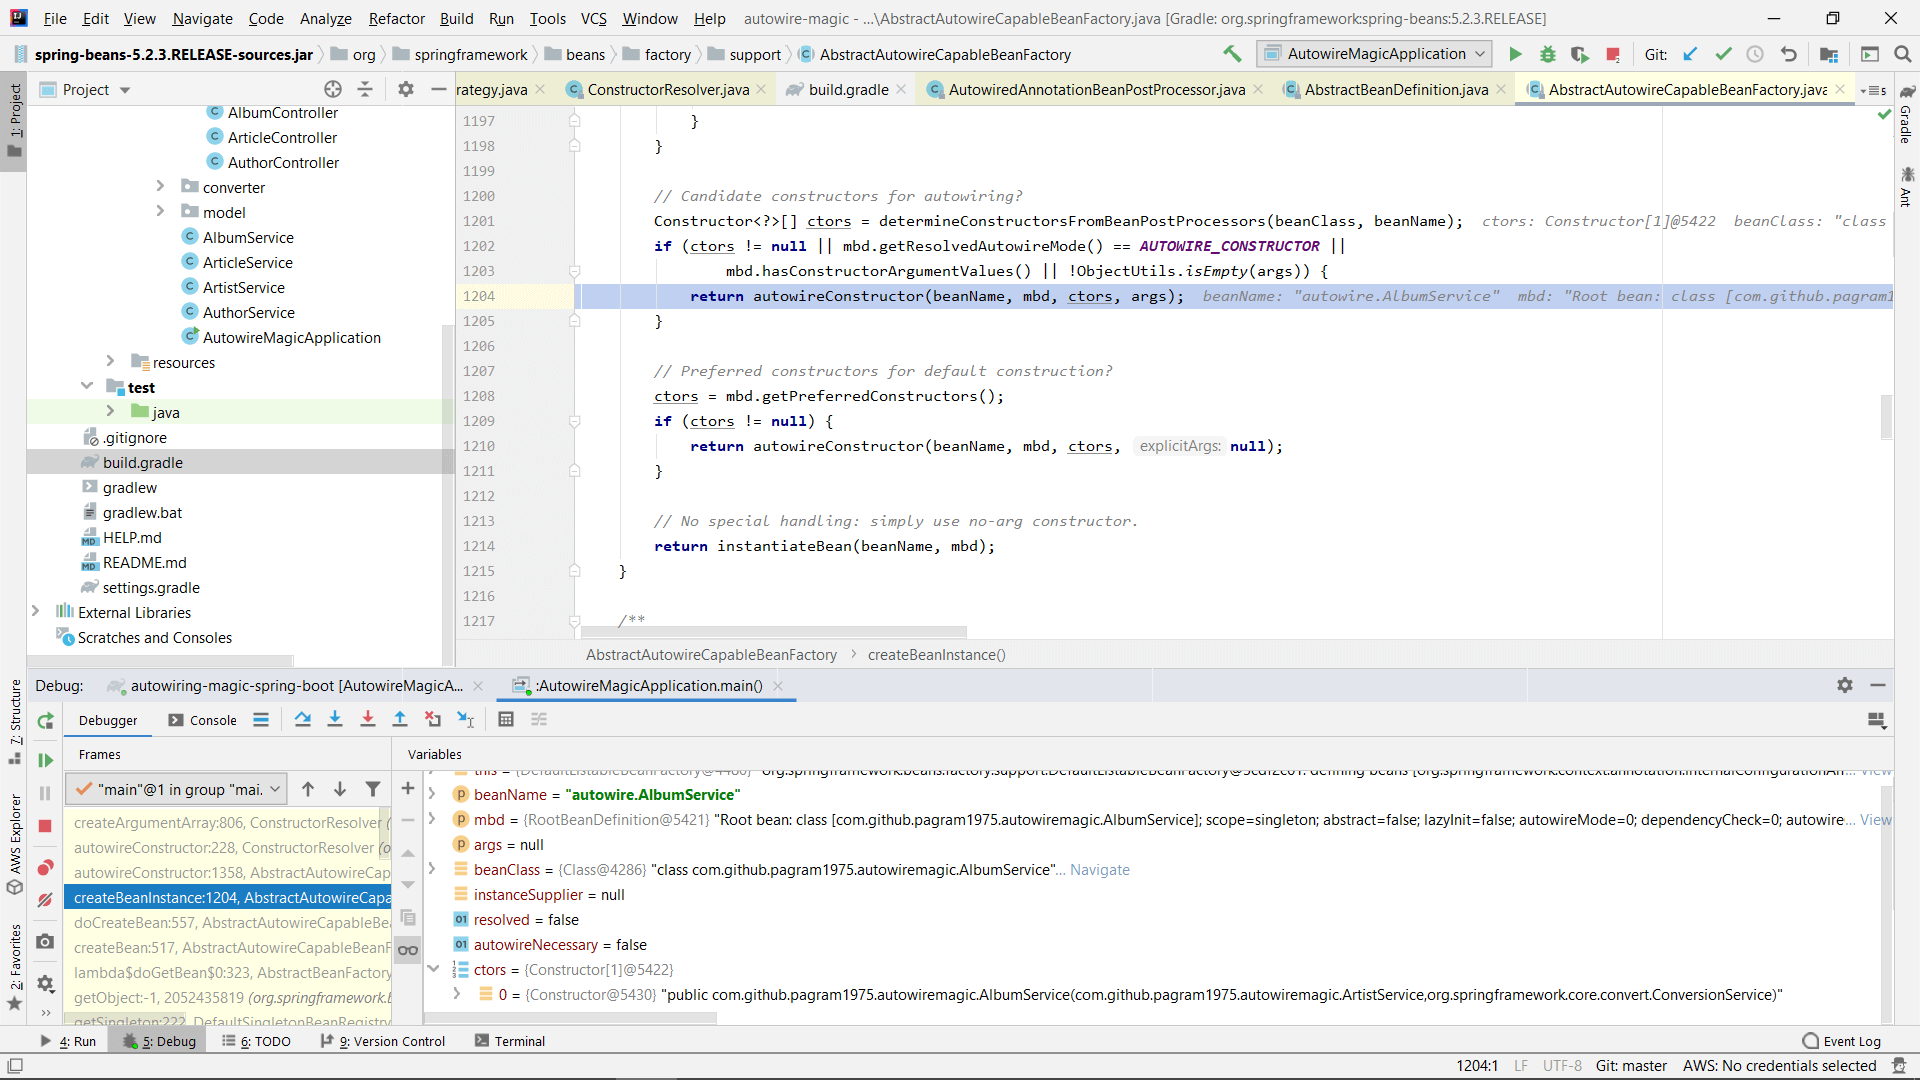 Debugging Spring in IntelliJ Idea to see the constructor for AlbumService has been chosen